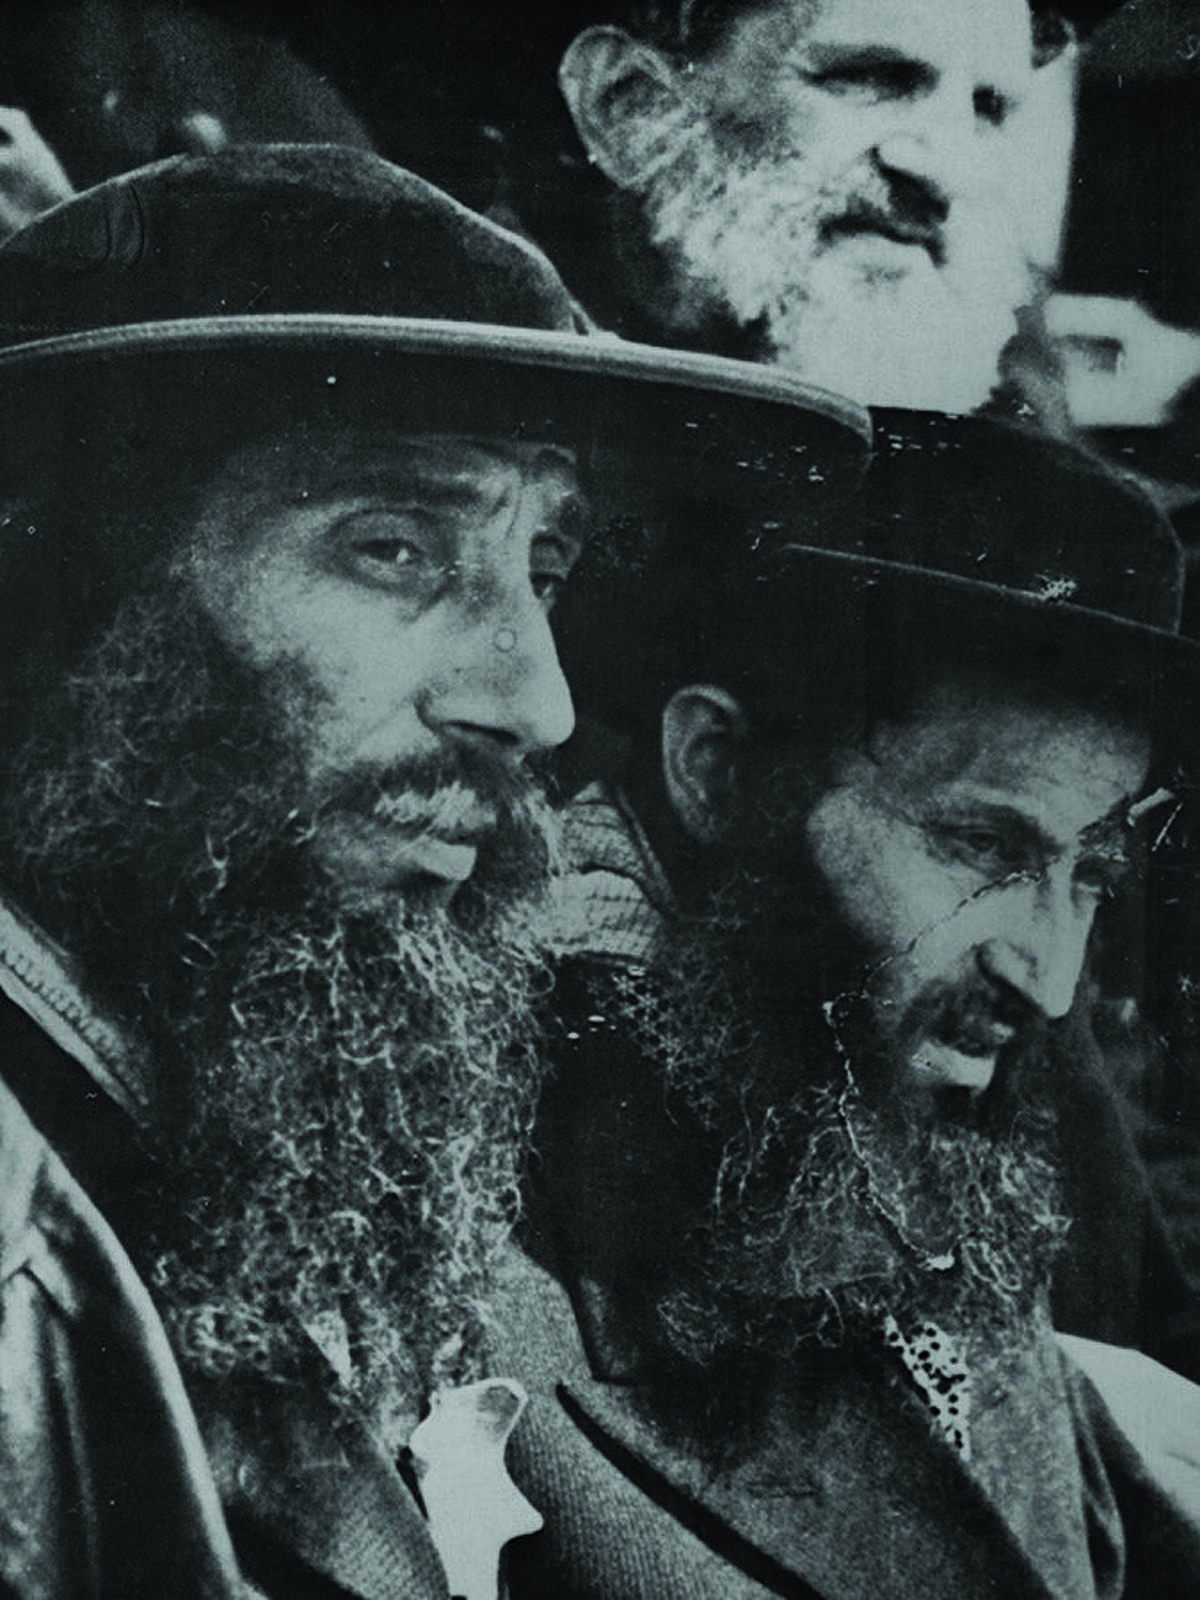 The exhibit features this photo of Jewish men taken before processing at Auschwitz.